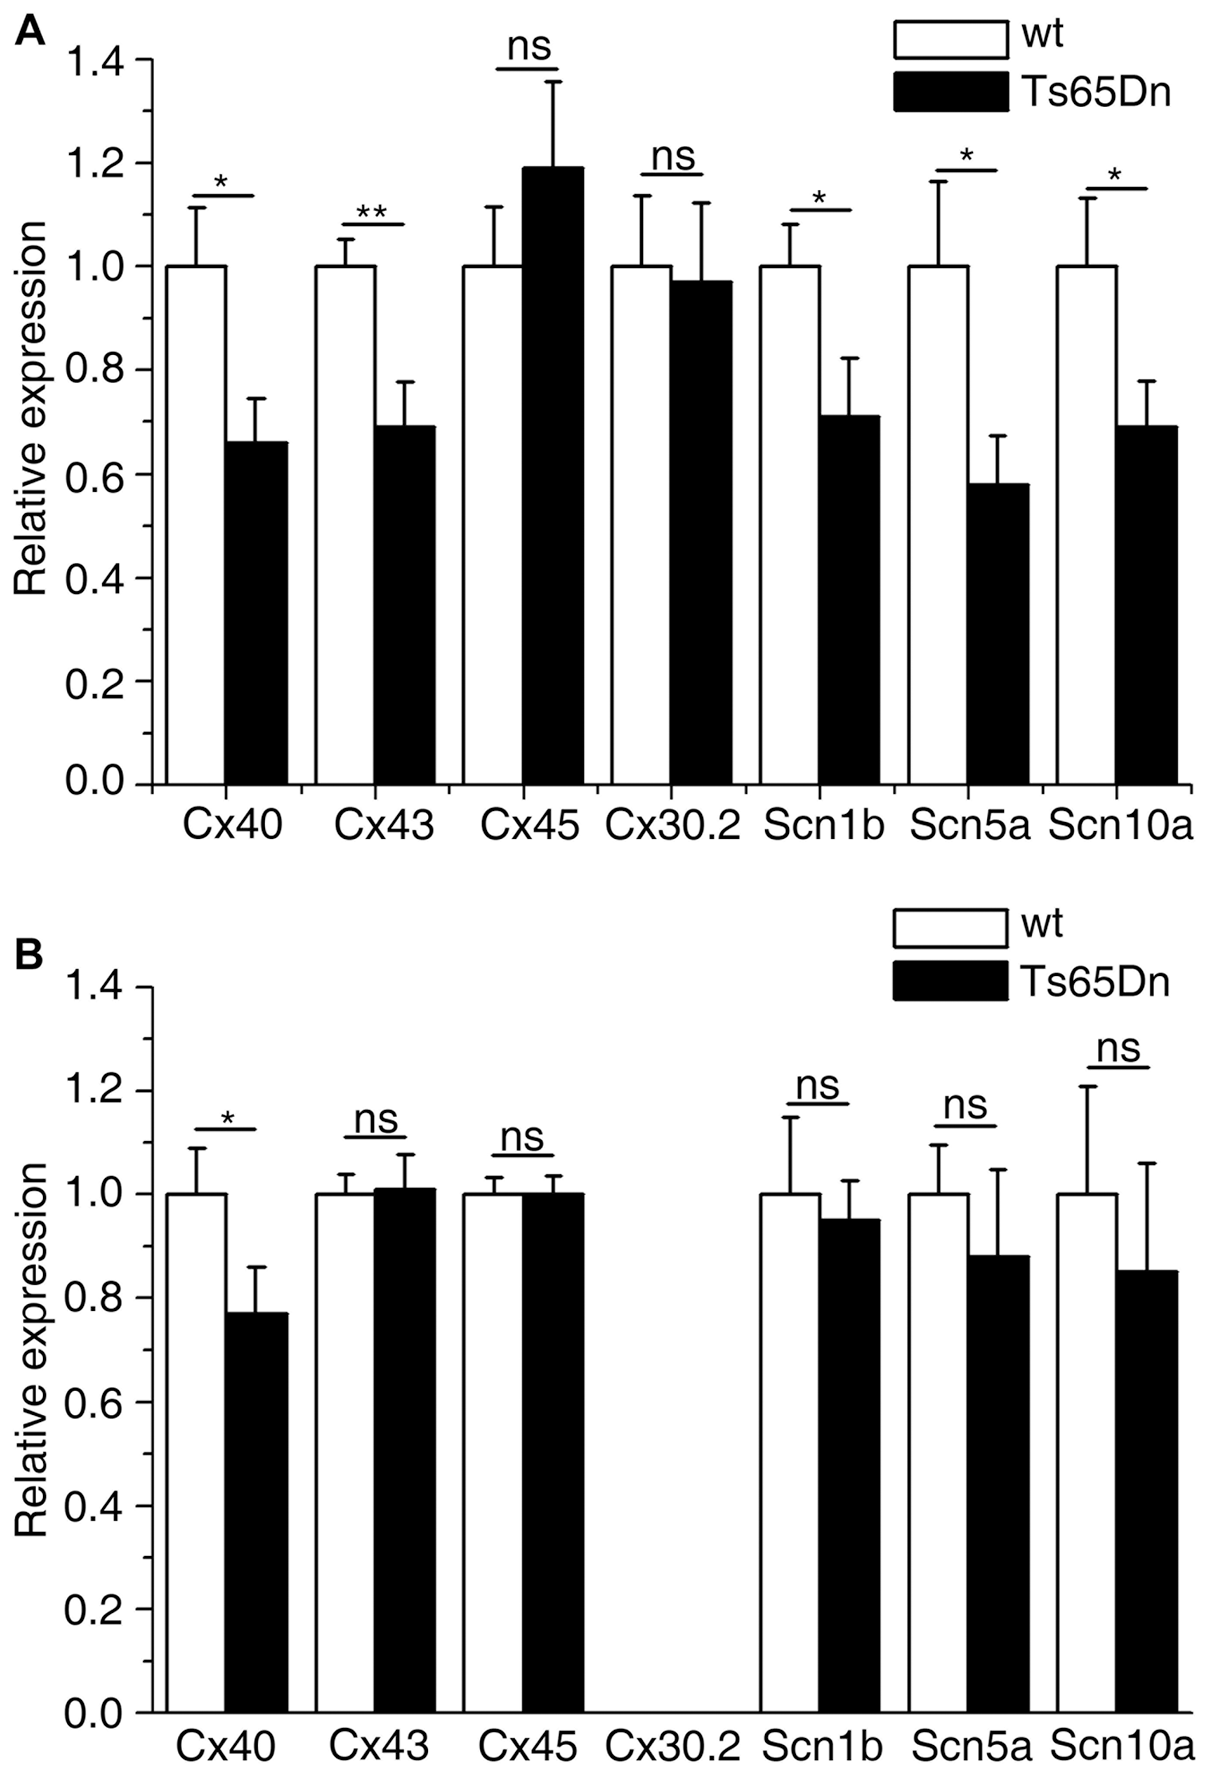 Atrial and ventricular connexins and sodium channel genes expression levels in wt and Ts65Dn mice.